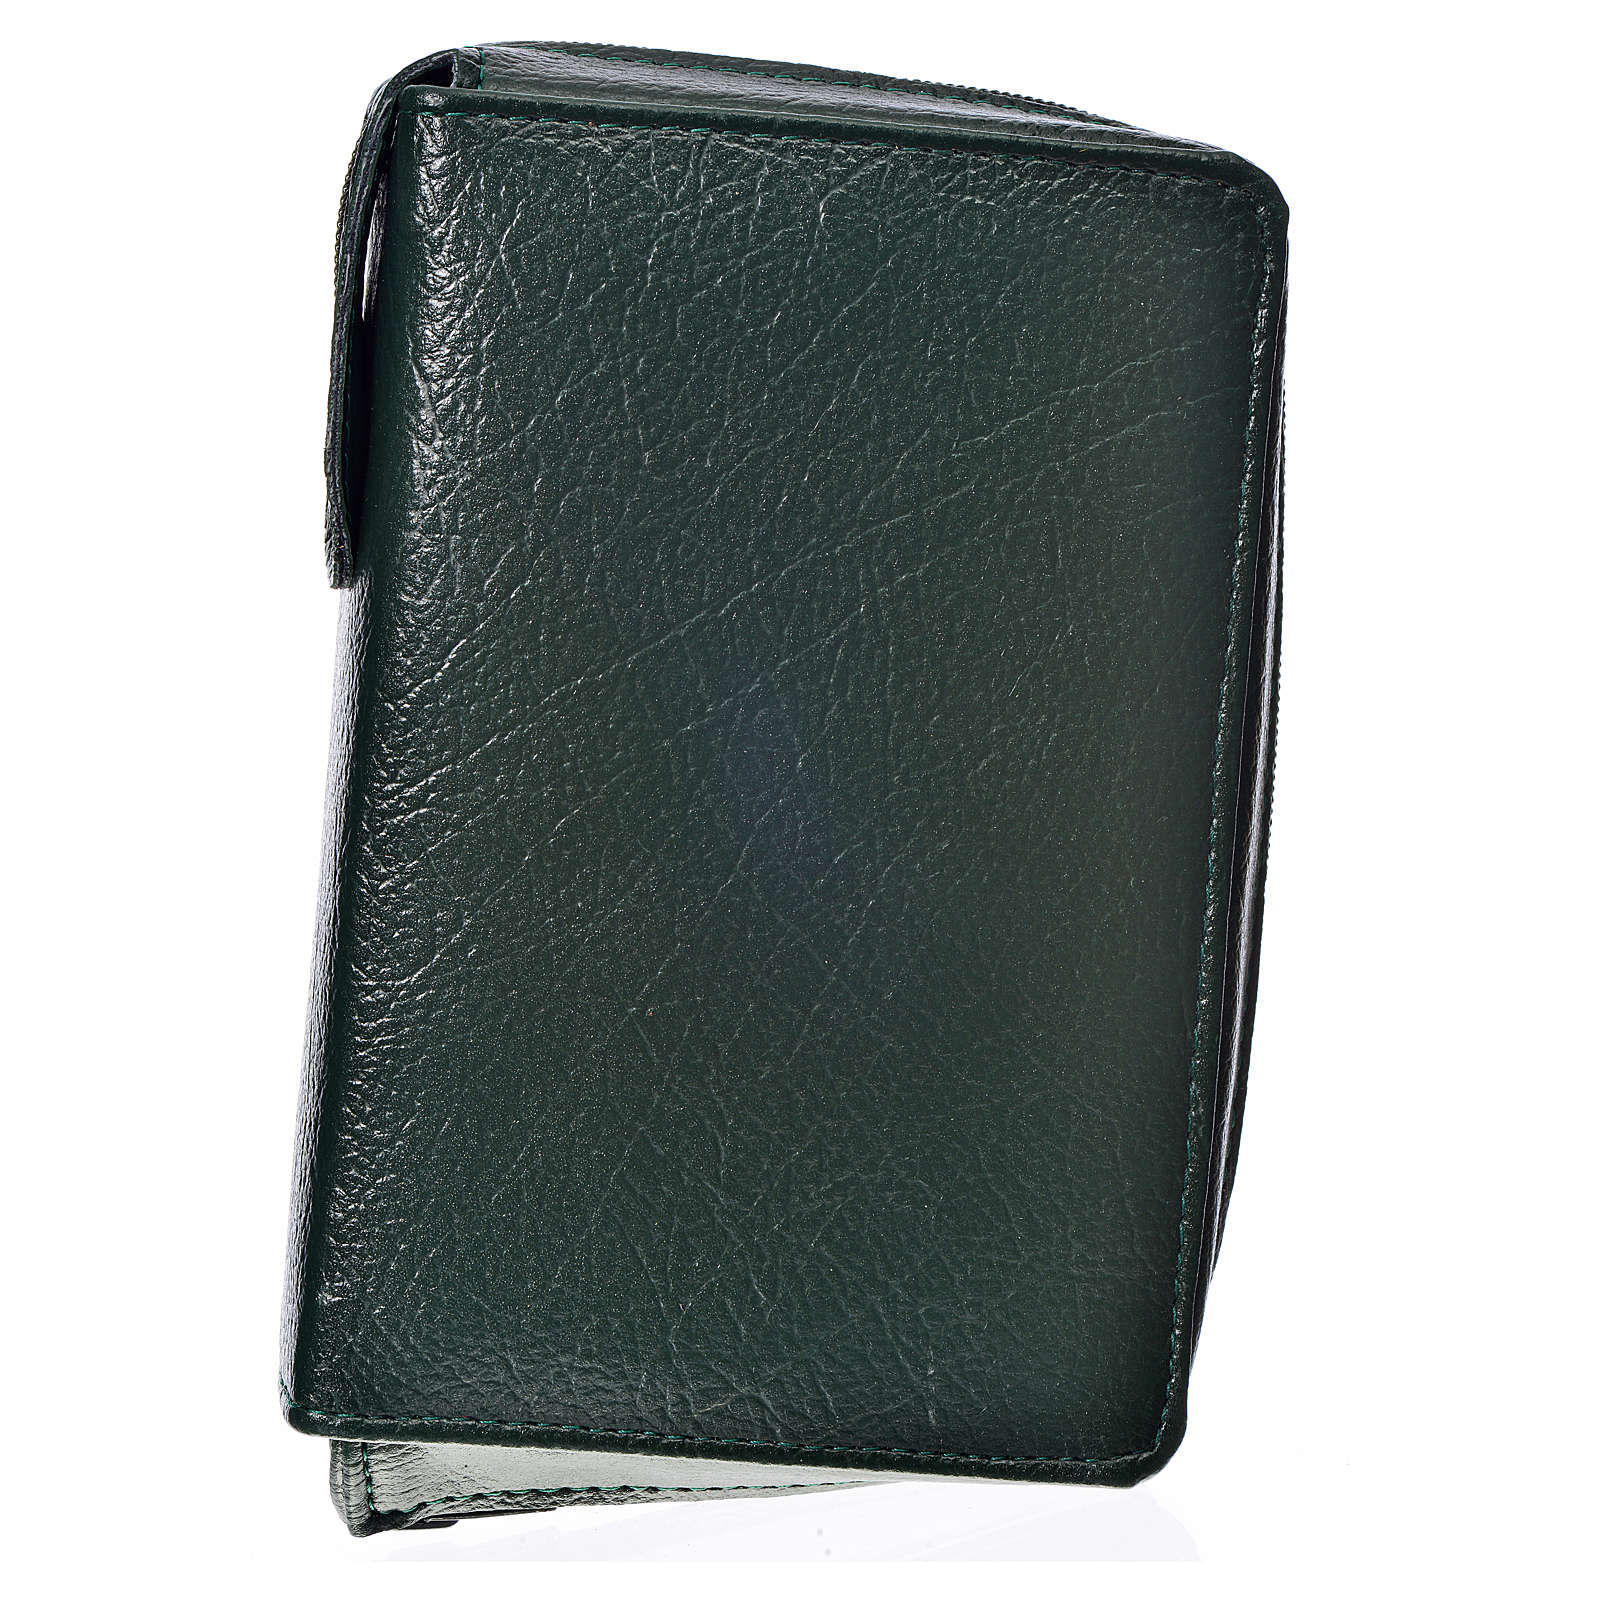 Divine Office cover in green bonded leather 4